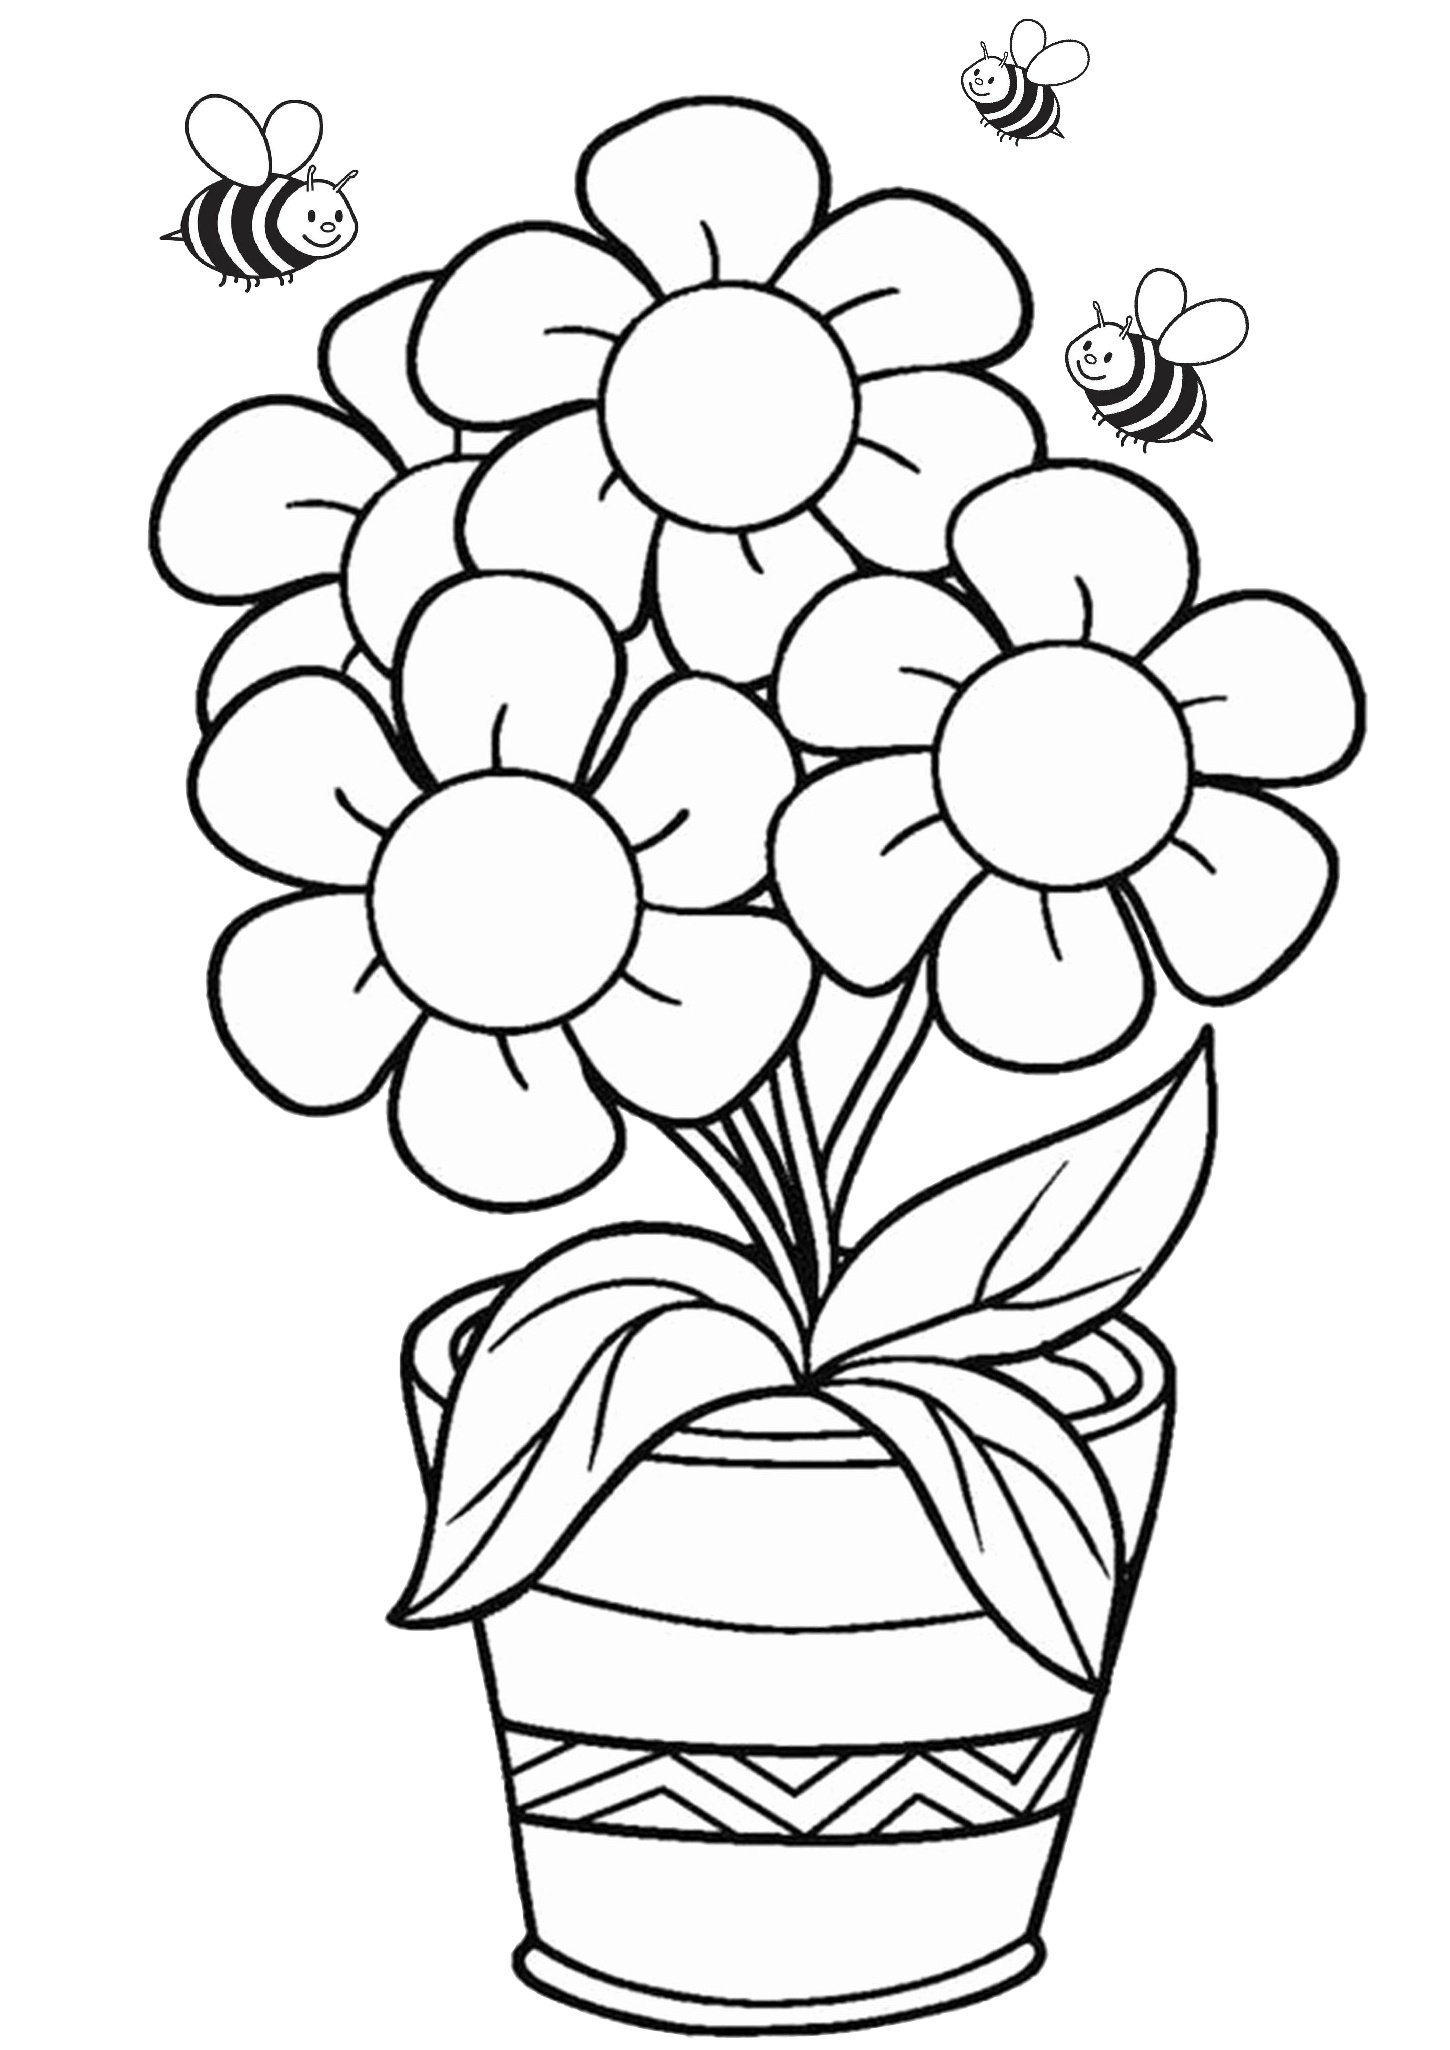 free printable flower coloring pages tulip coloring pages to download and print for free printable free pages coloring flower